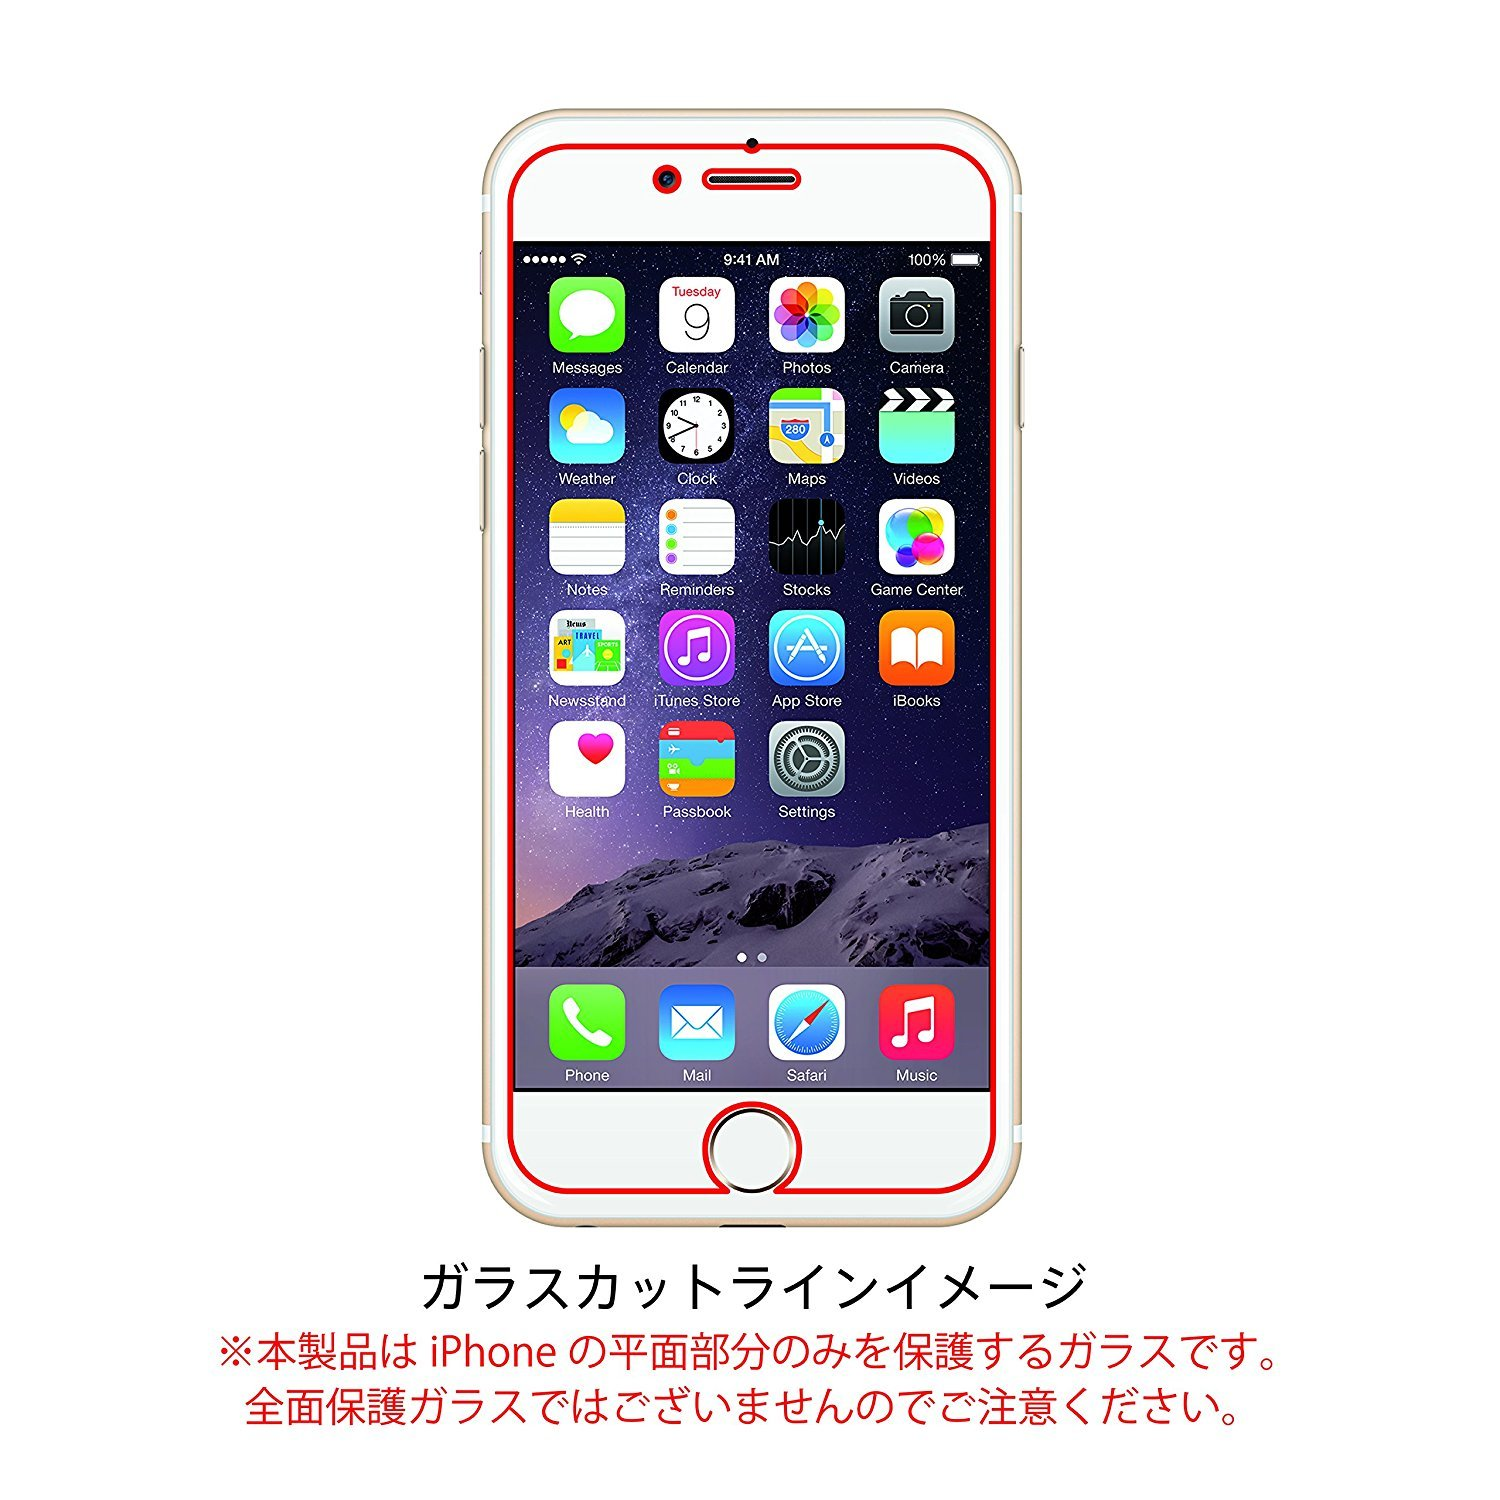 a2e91275e2 Amazon | [CASEBANK] iPhone 8 / iPhone 7 / iPhone 6s / iPhone 6 (4.7インチ)用 ガラス フィルム ゴリラ ガラス 液晶保護 フィルム 指紋防止 GORILLA GLASS 保護 ...